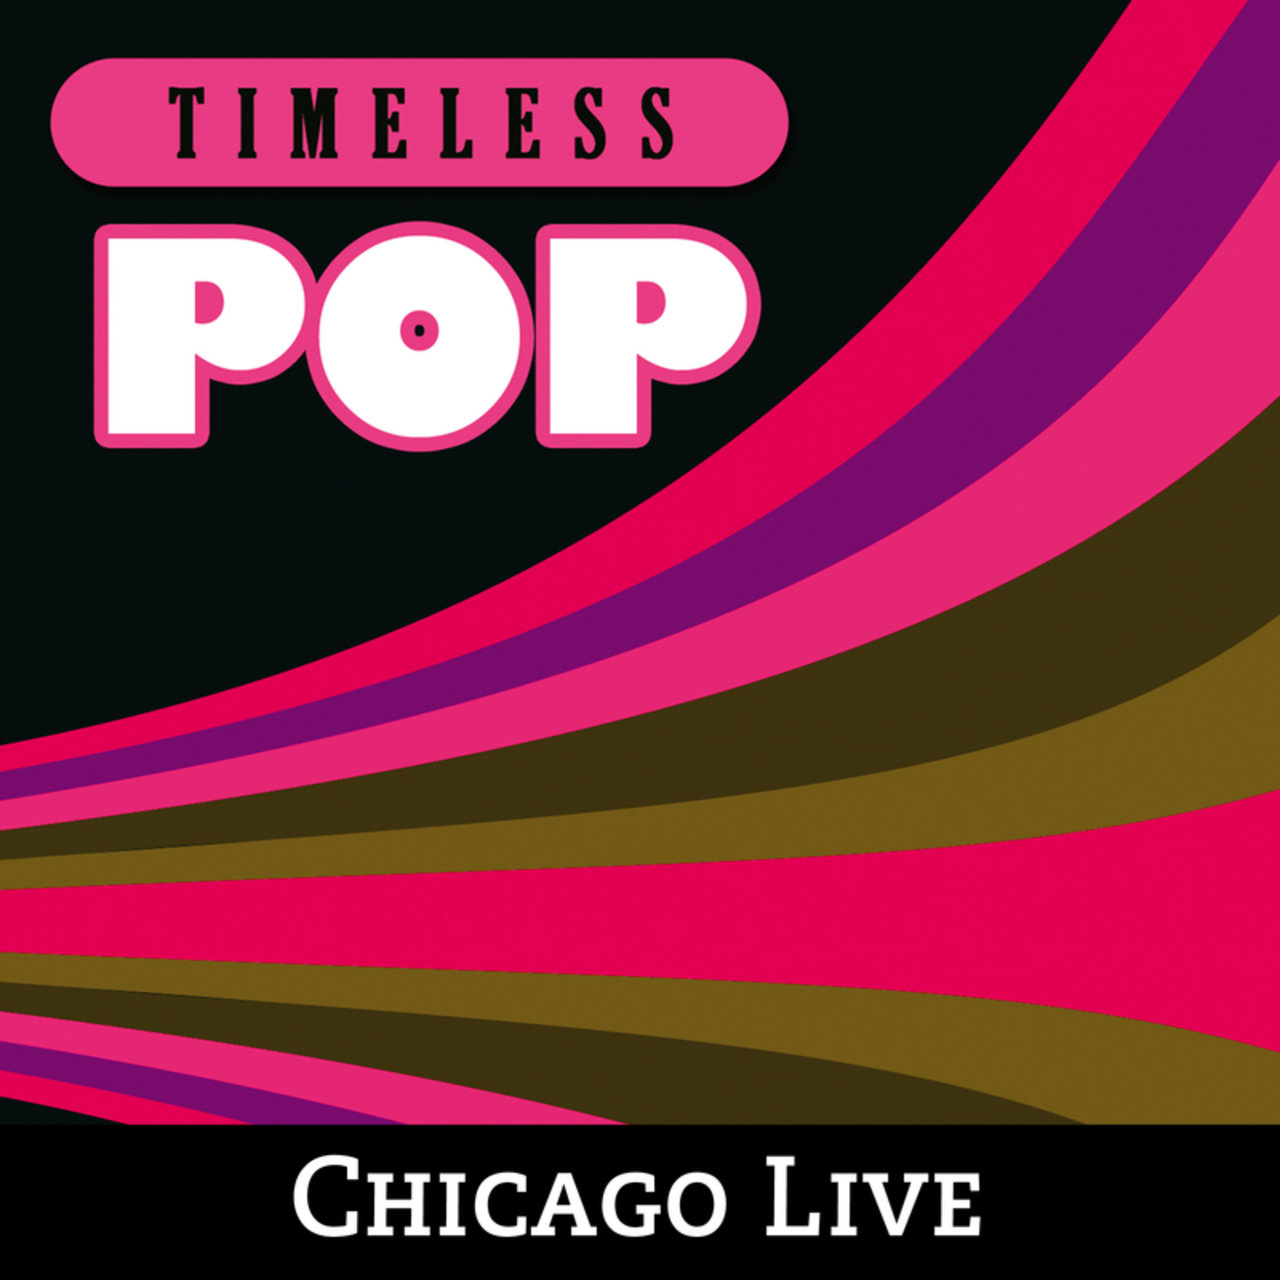 Timeless Pop: Chicago Live